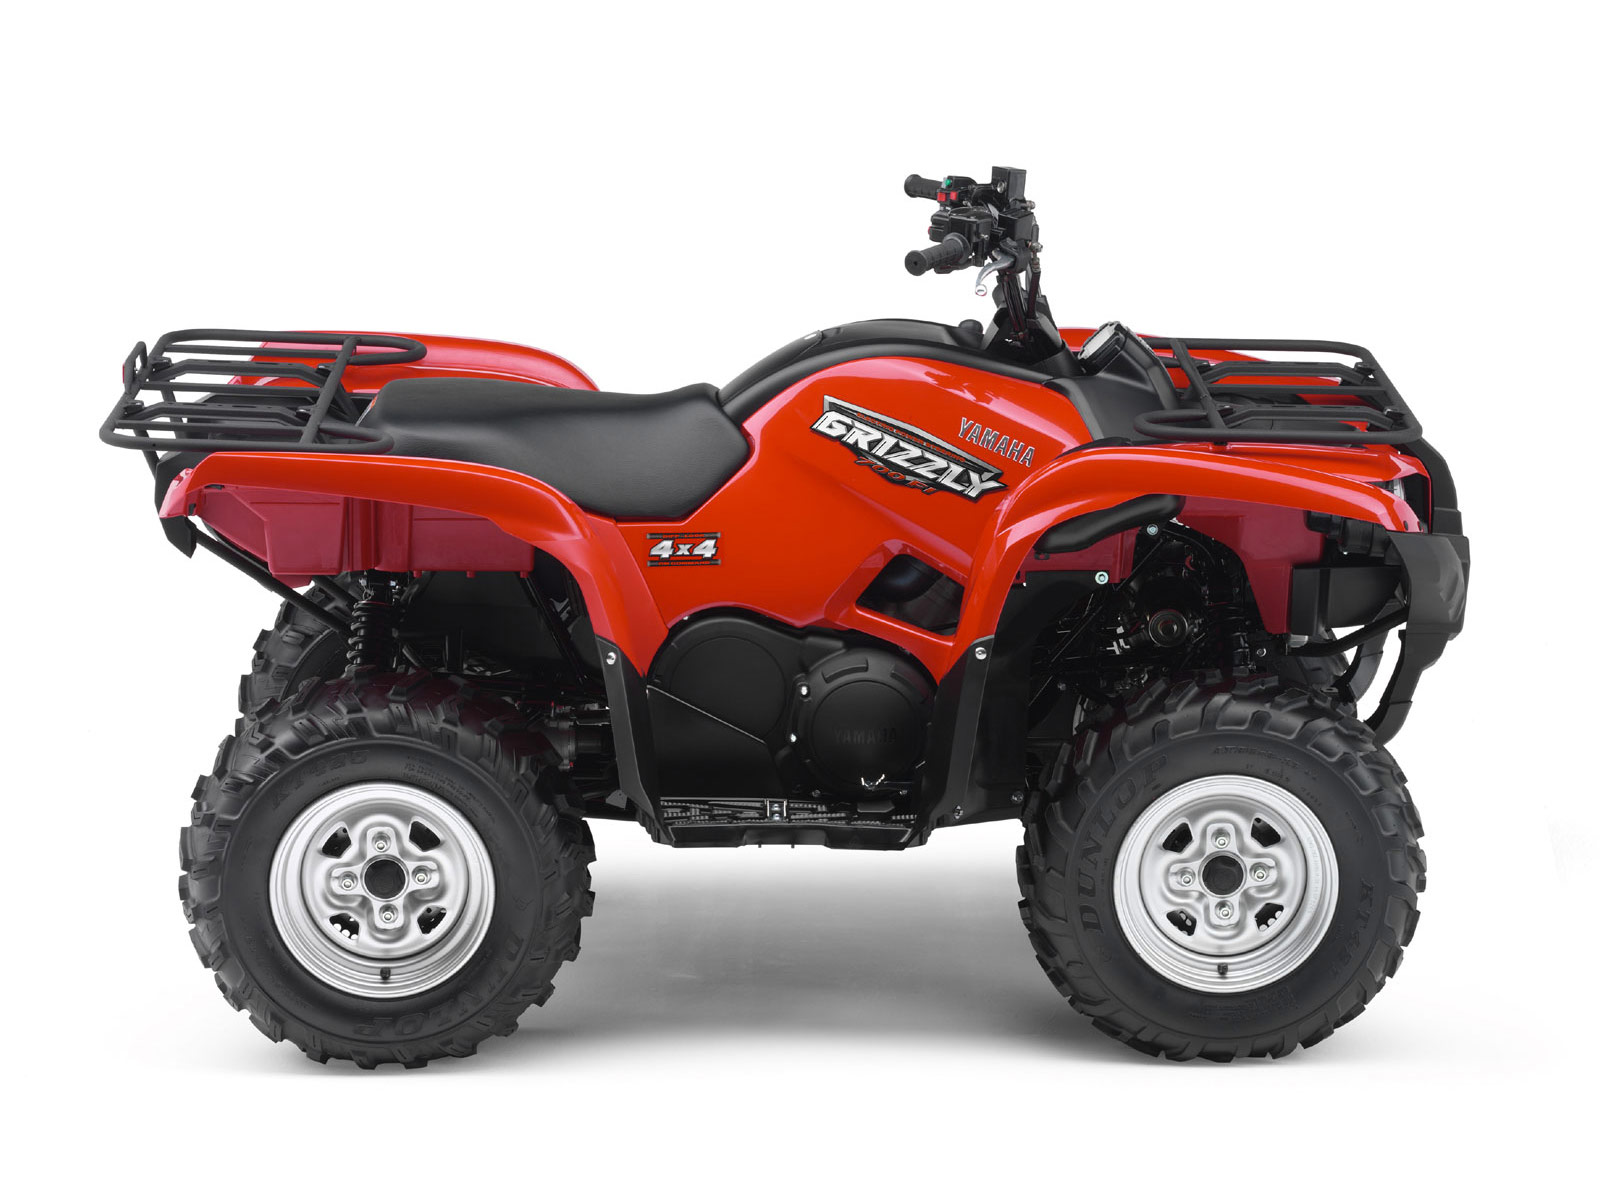 2009 yamaha grizzly 700fi eps atv pictures. Black Bedroom Furniture Sets. Home Design Ideas